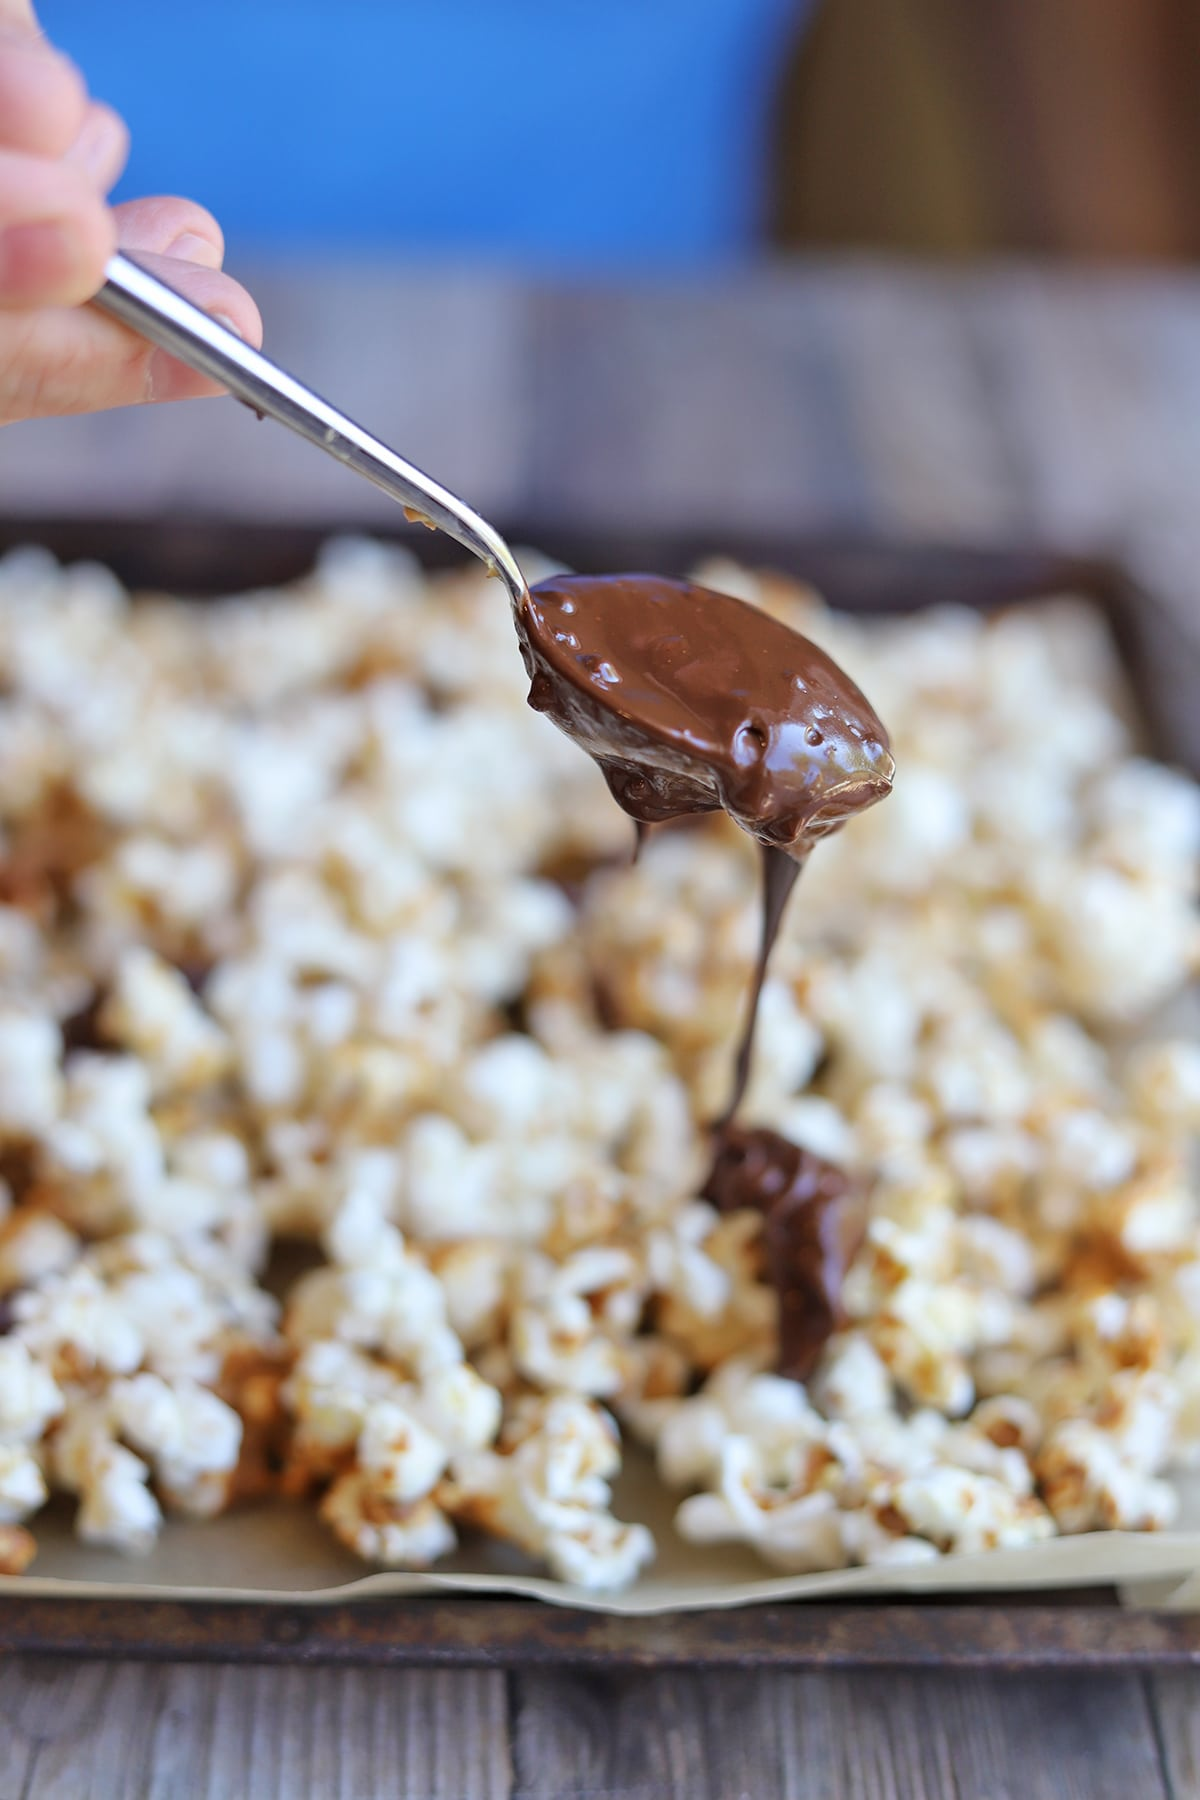 Spoon drizzling melted chocolate onto popcorn.